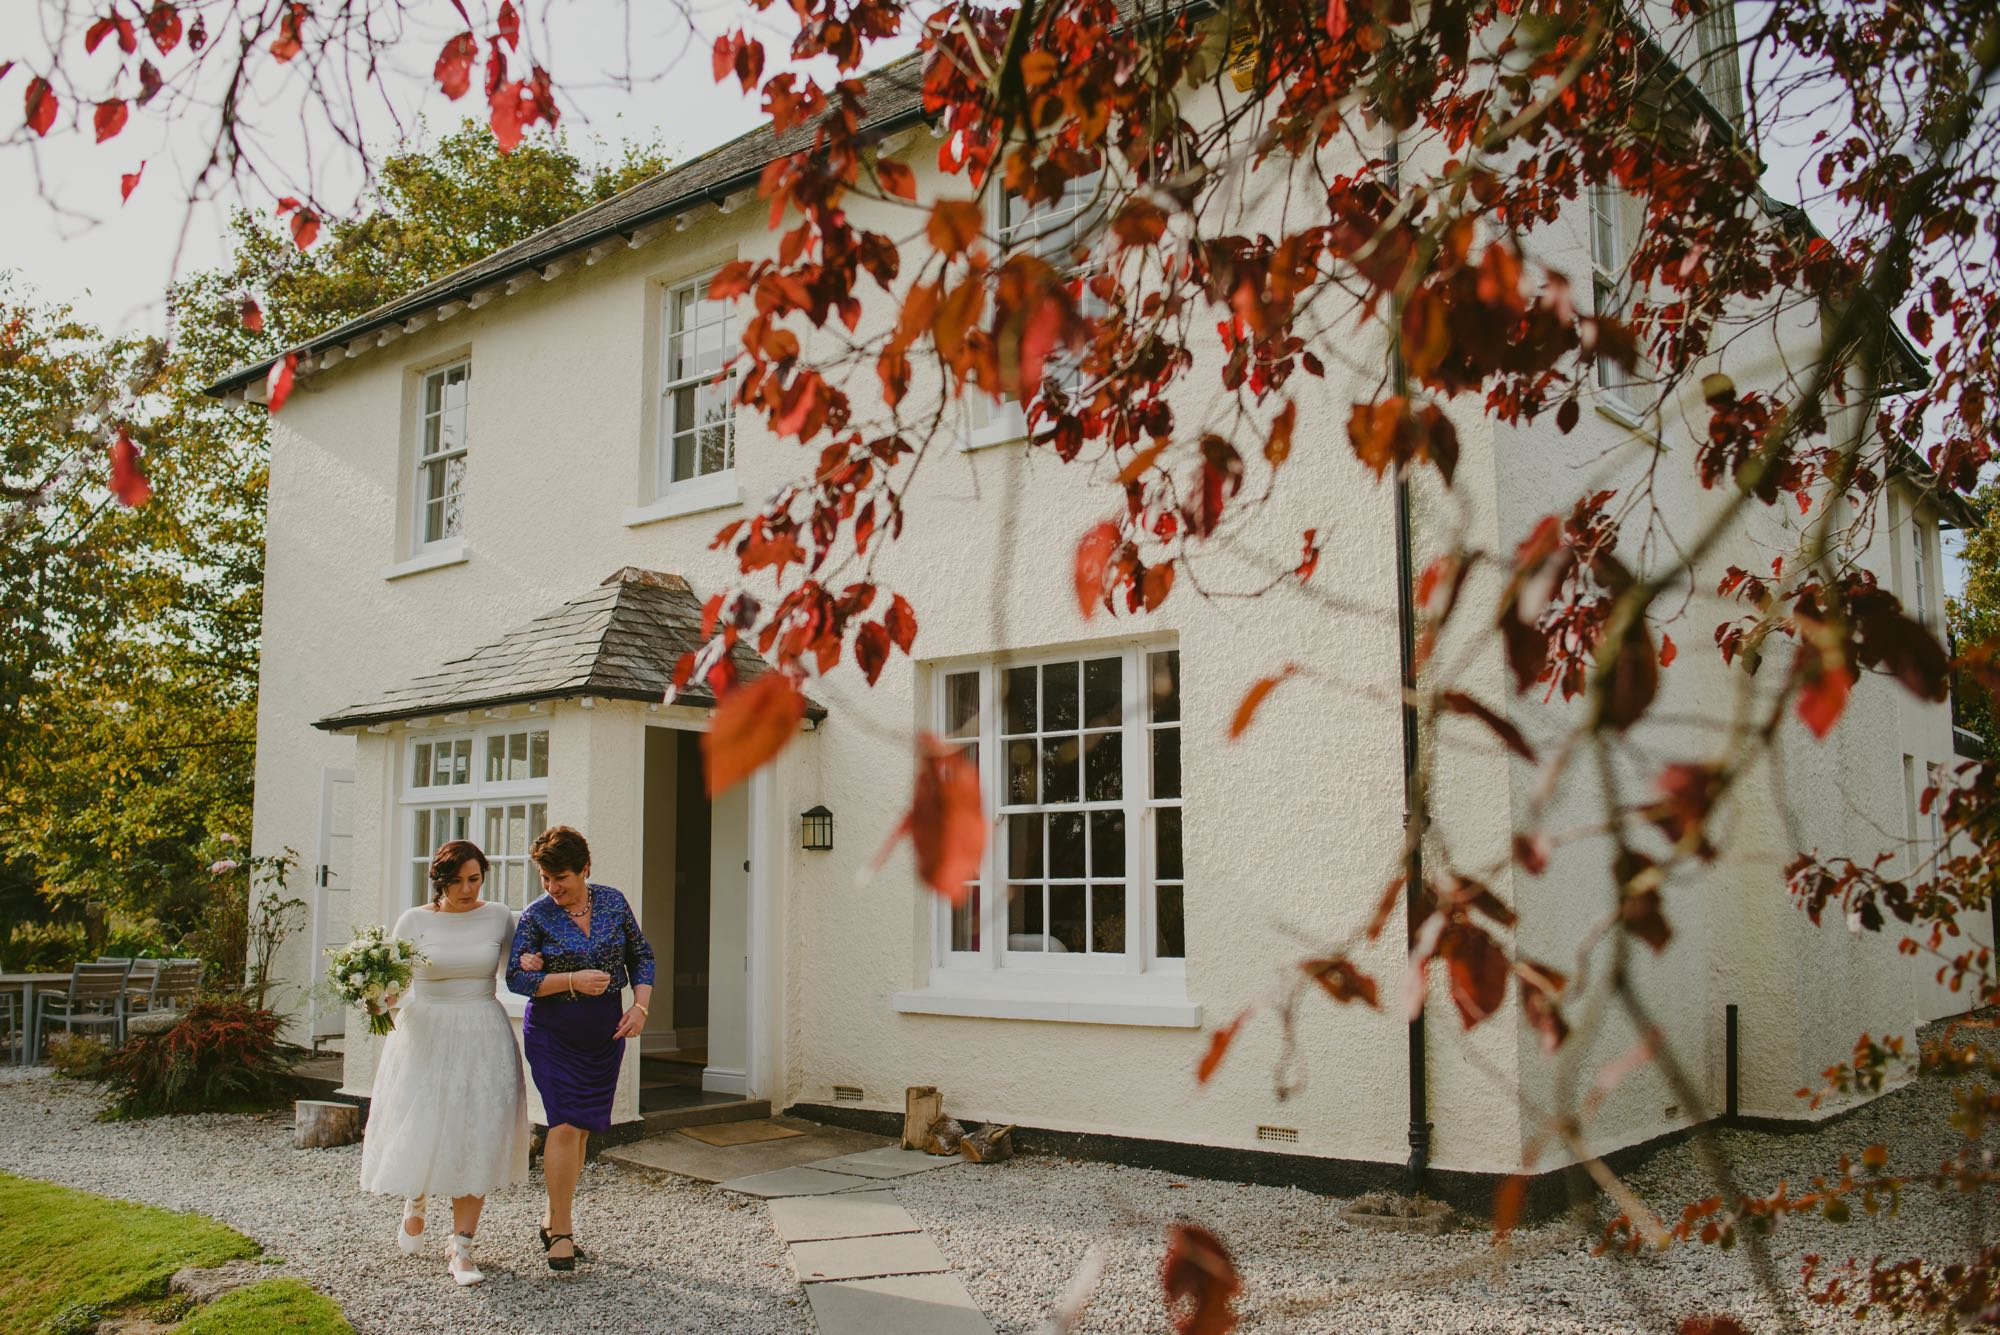 This is a picture of a bride and her mum beside the farmhouse walking towards the ceremony. The bride and her mum are in the left hand corner of the photo. The farmhouse takes up most of the image. The image is taken from just in front of the right hand corner of the house. There are some trees to the left with yellow autumnal leaves. There are some branches with russet leaves in the foreground. In the bottom left of the picture on the far side of the house you can seee some outside chairs and a table. The bride and her mum are walking away from the house, towards the camera along a gravel path. The farmhouse is rendered and painted white. It has a gray slate roof. The windows are georgian style sash windows and are painted white. There are three windows on the first floor and a French door on the ground floor which is open. There is a porch with two sets of georgian windows and a pitched slate roof. On the right hand side of the porch there is a open door. To the right of the porch there is another georgian style sah window. TThe bride is wearing a knee-length dress which has a full skirt but a fitted waist and bodice. It has a high neckline and long sleeves. The dress is white and she is wearing white, flat shoes. Her mum is wearing a purple pencil skirt and a purple, long-sleeved, v-necked silk blouse. The bride has long dark hair that she is wearing up. her mum has short dark hair.